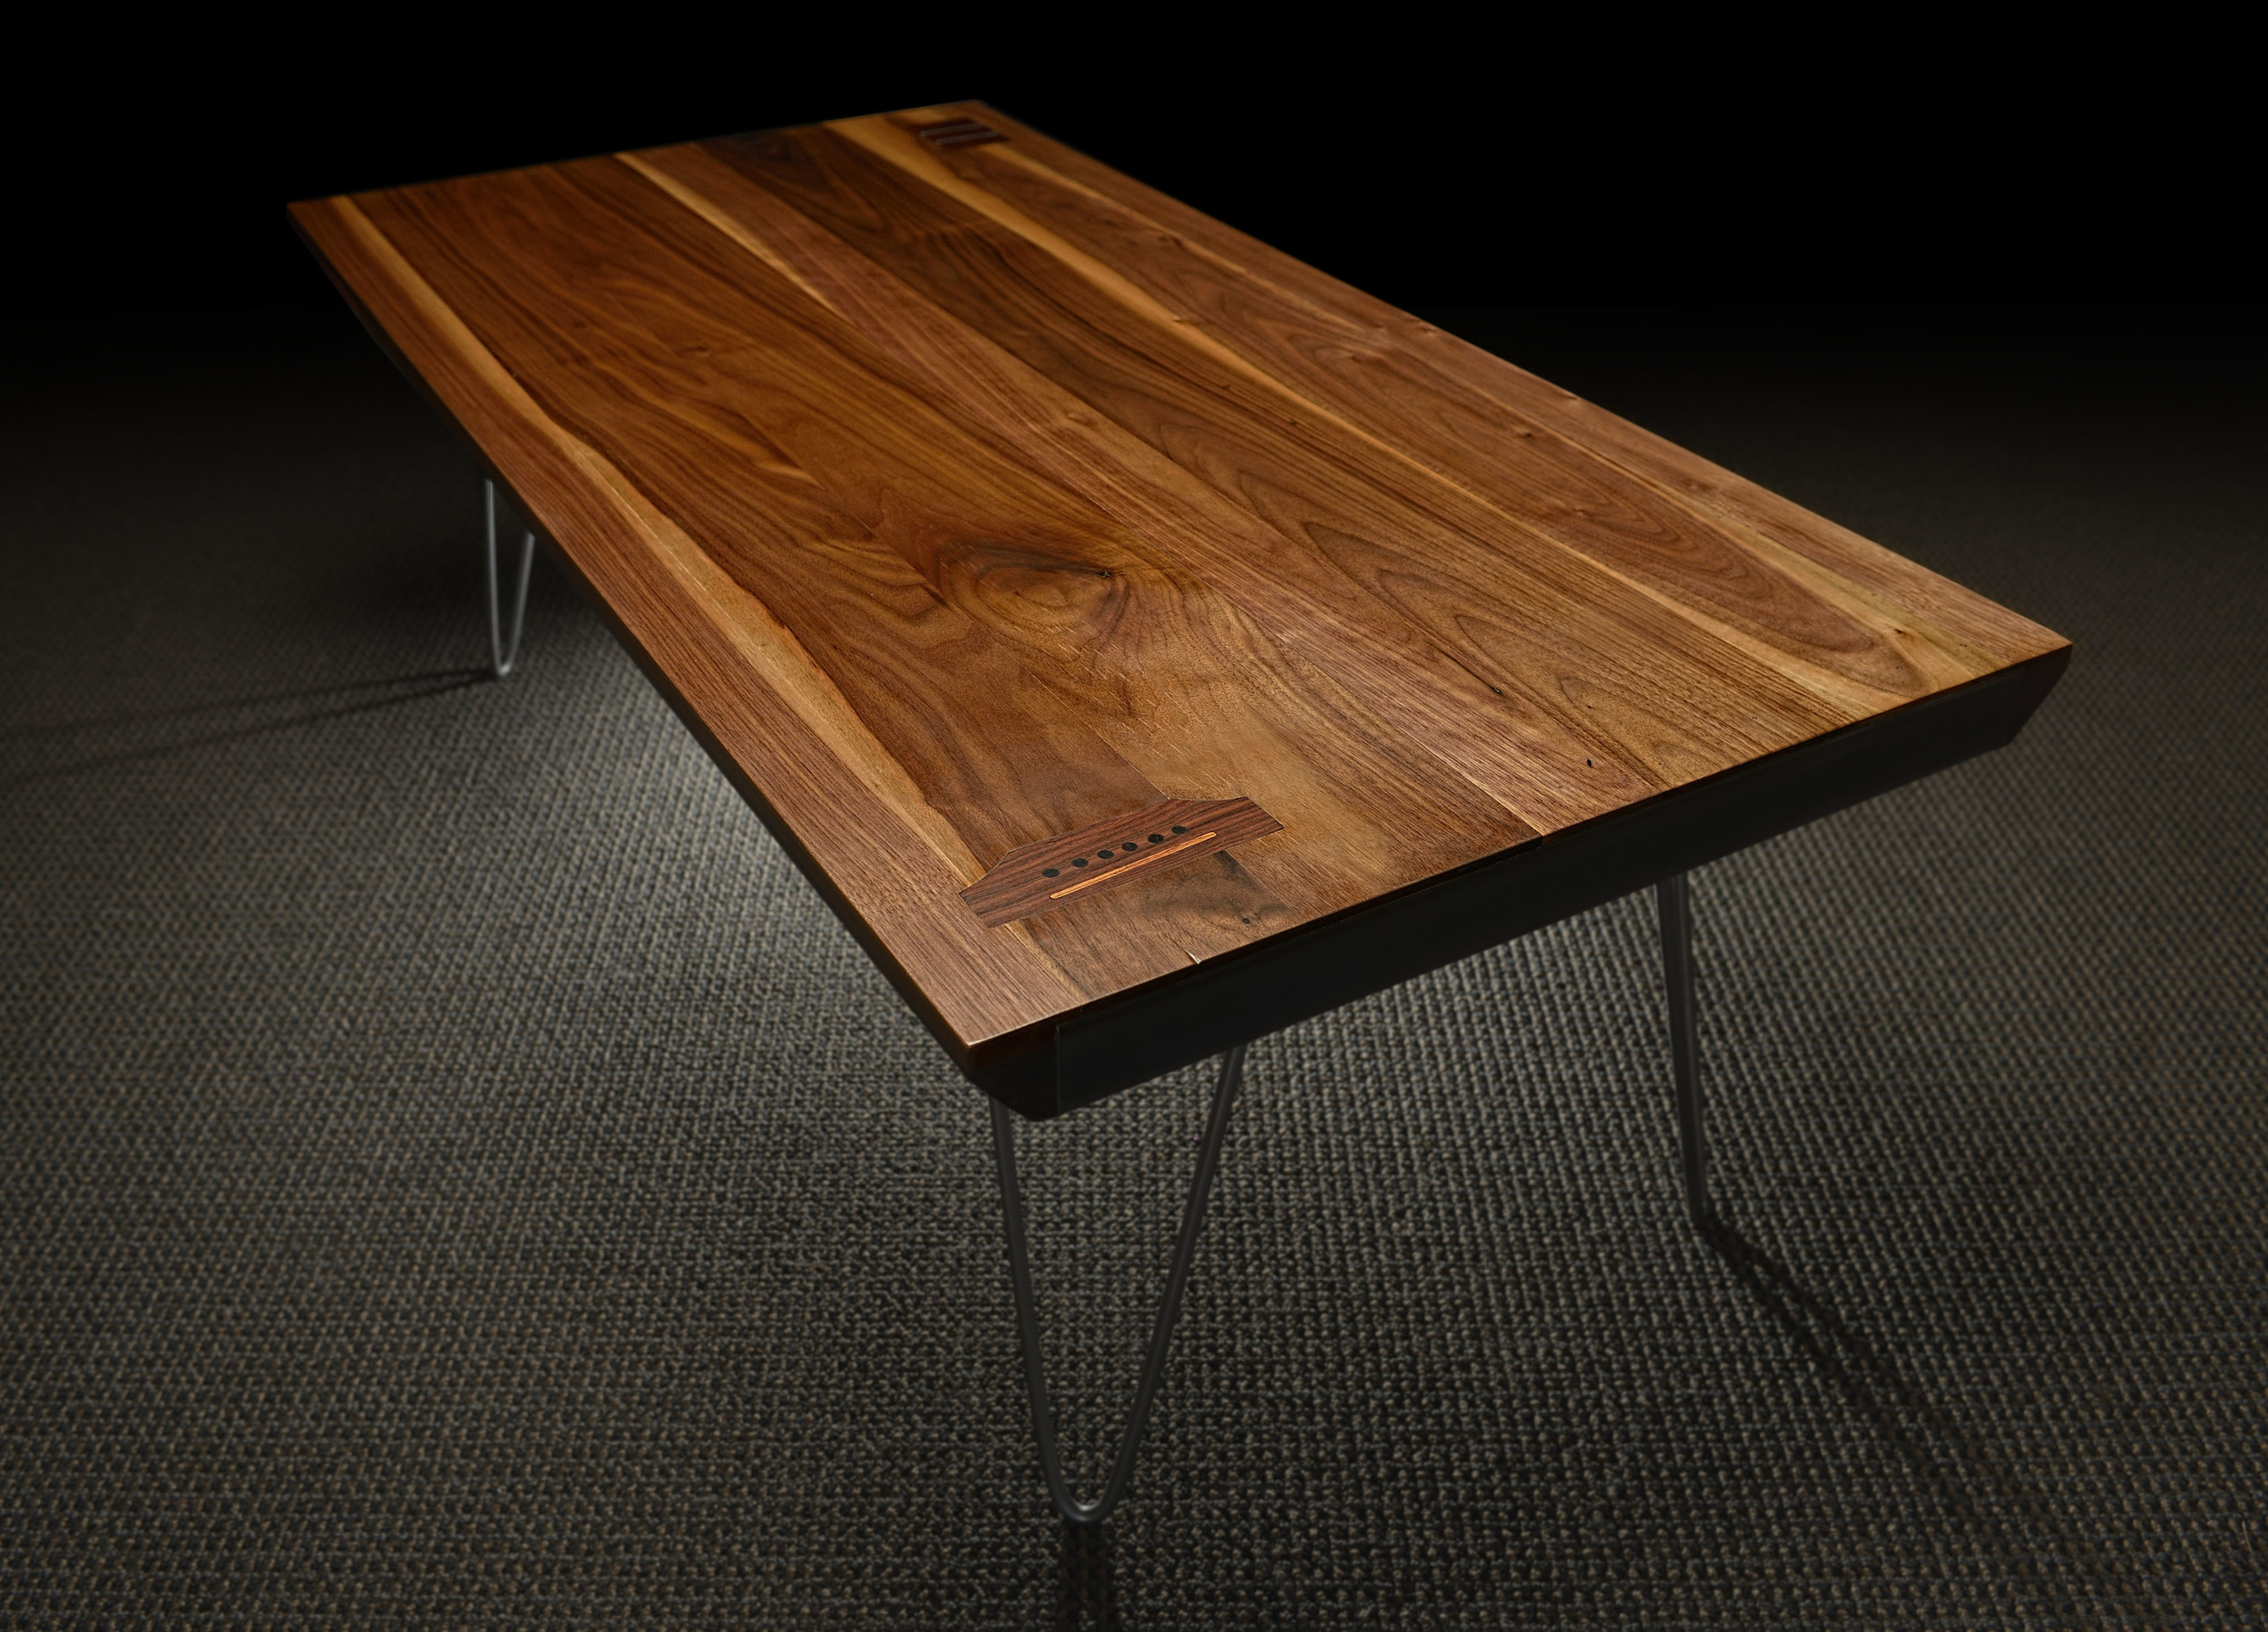 nick de partee coffee table — vibe reclaimed works